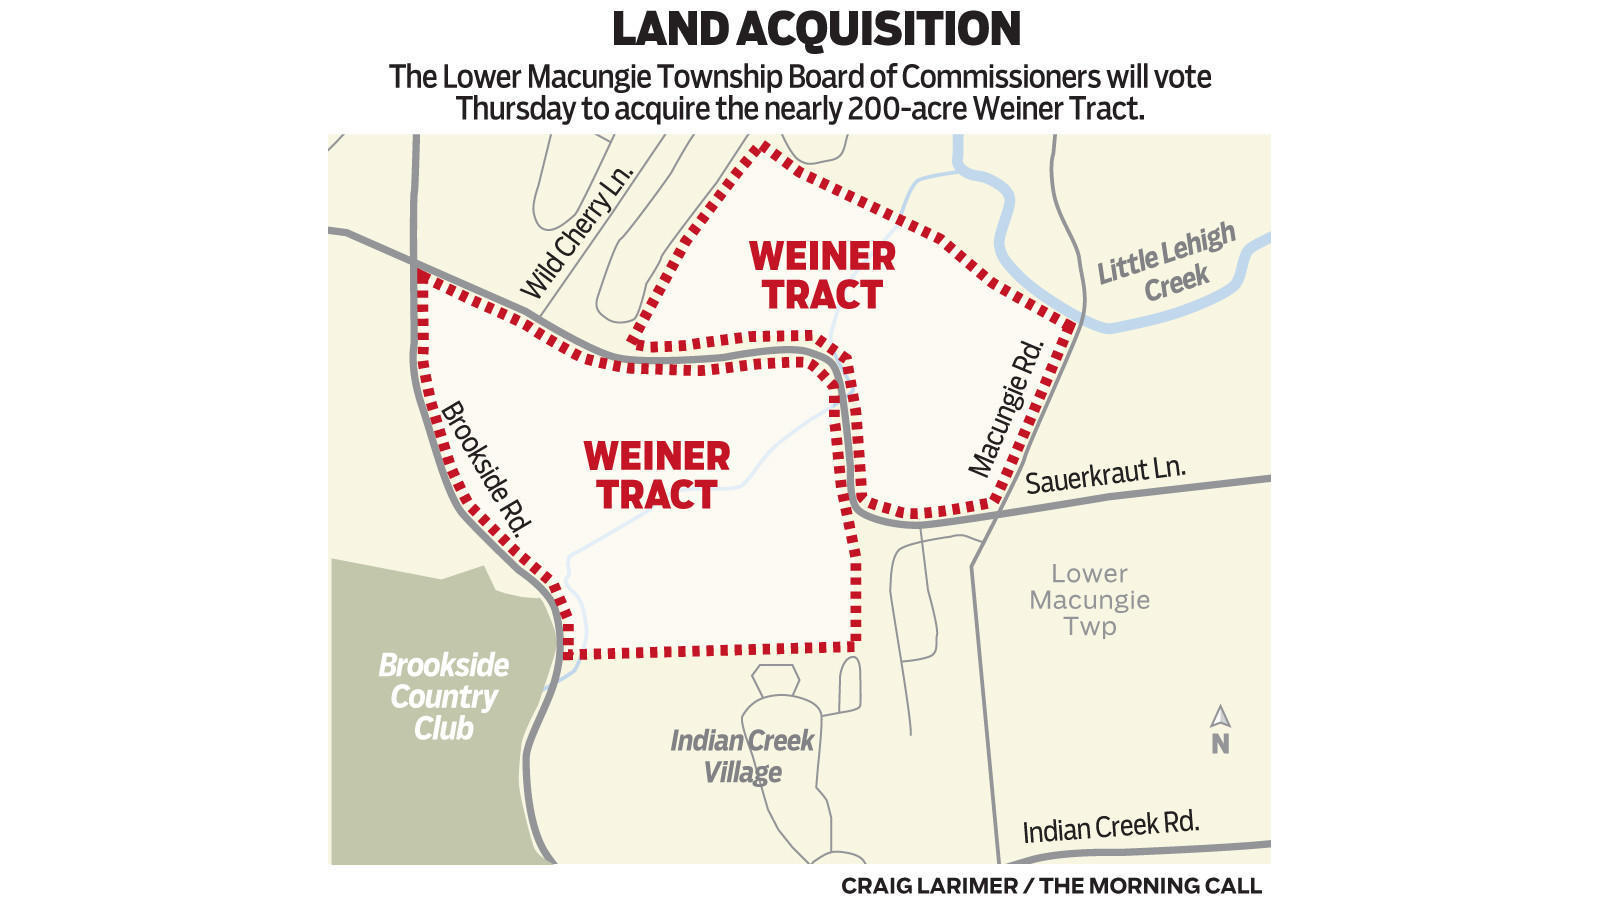 in biggest land preservation move yet lower macungie will vote to